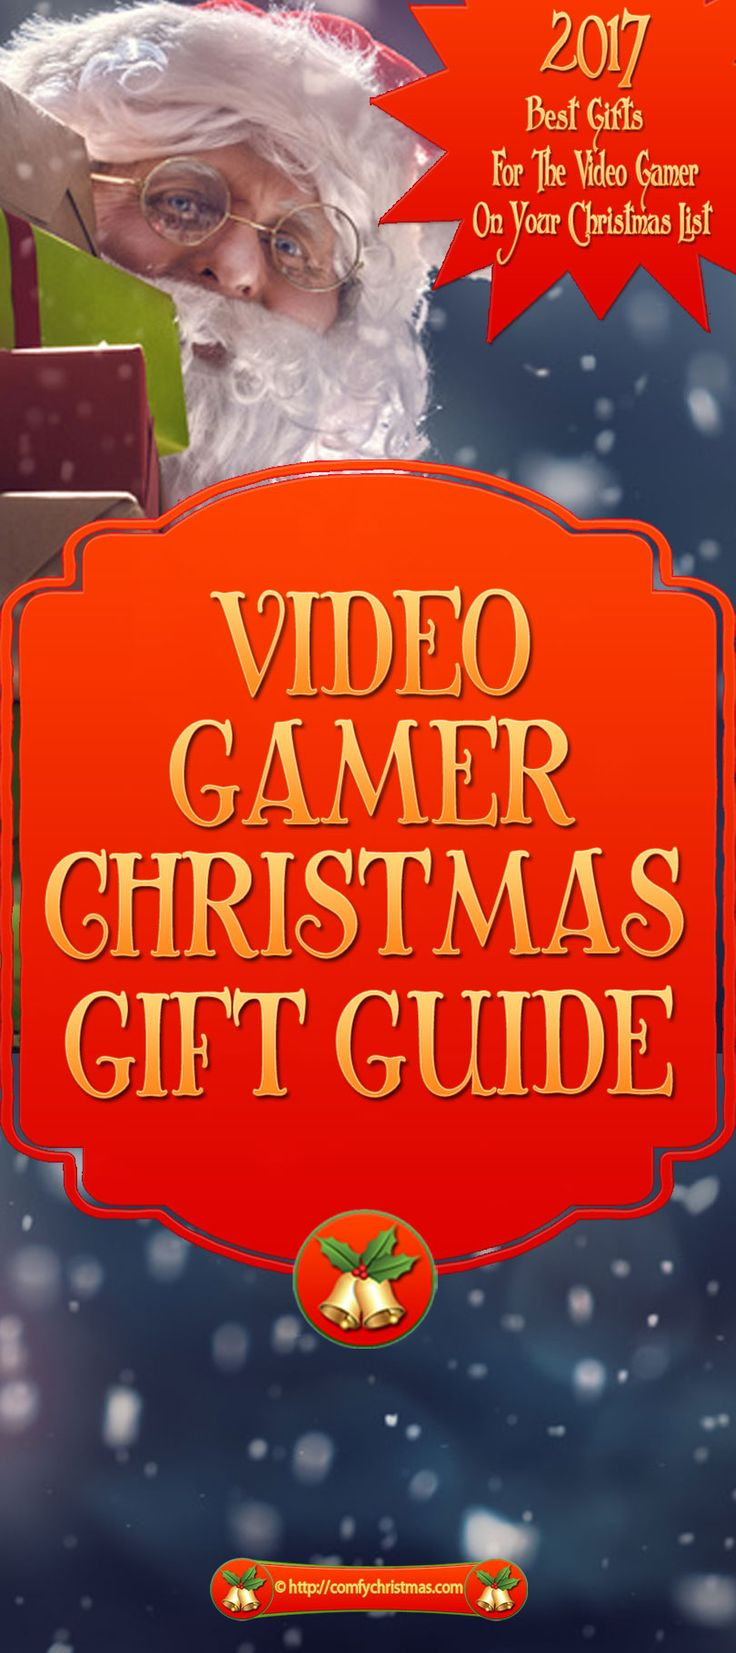 Are you looking for Video Gamer Gifts? If you're searching for gaming gifts for your boyfriend, husband, or kids this 2017 Video Gamer Gifts Guide will give you an idea of what the HOT selling products are for this holiday season.